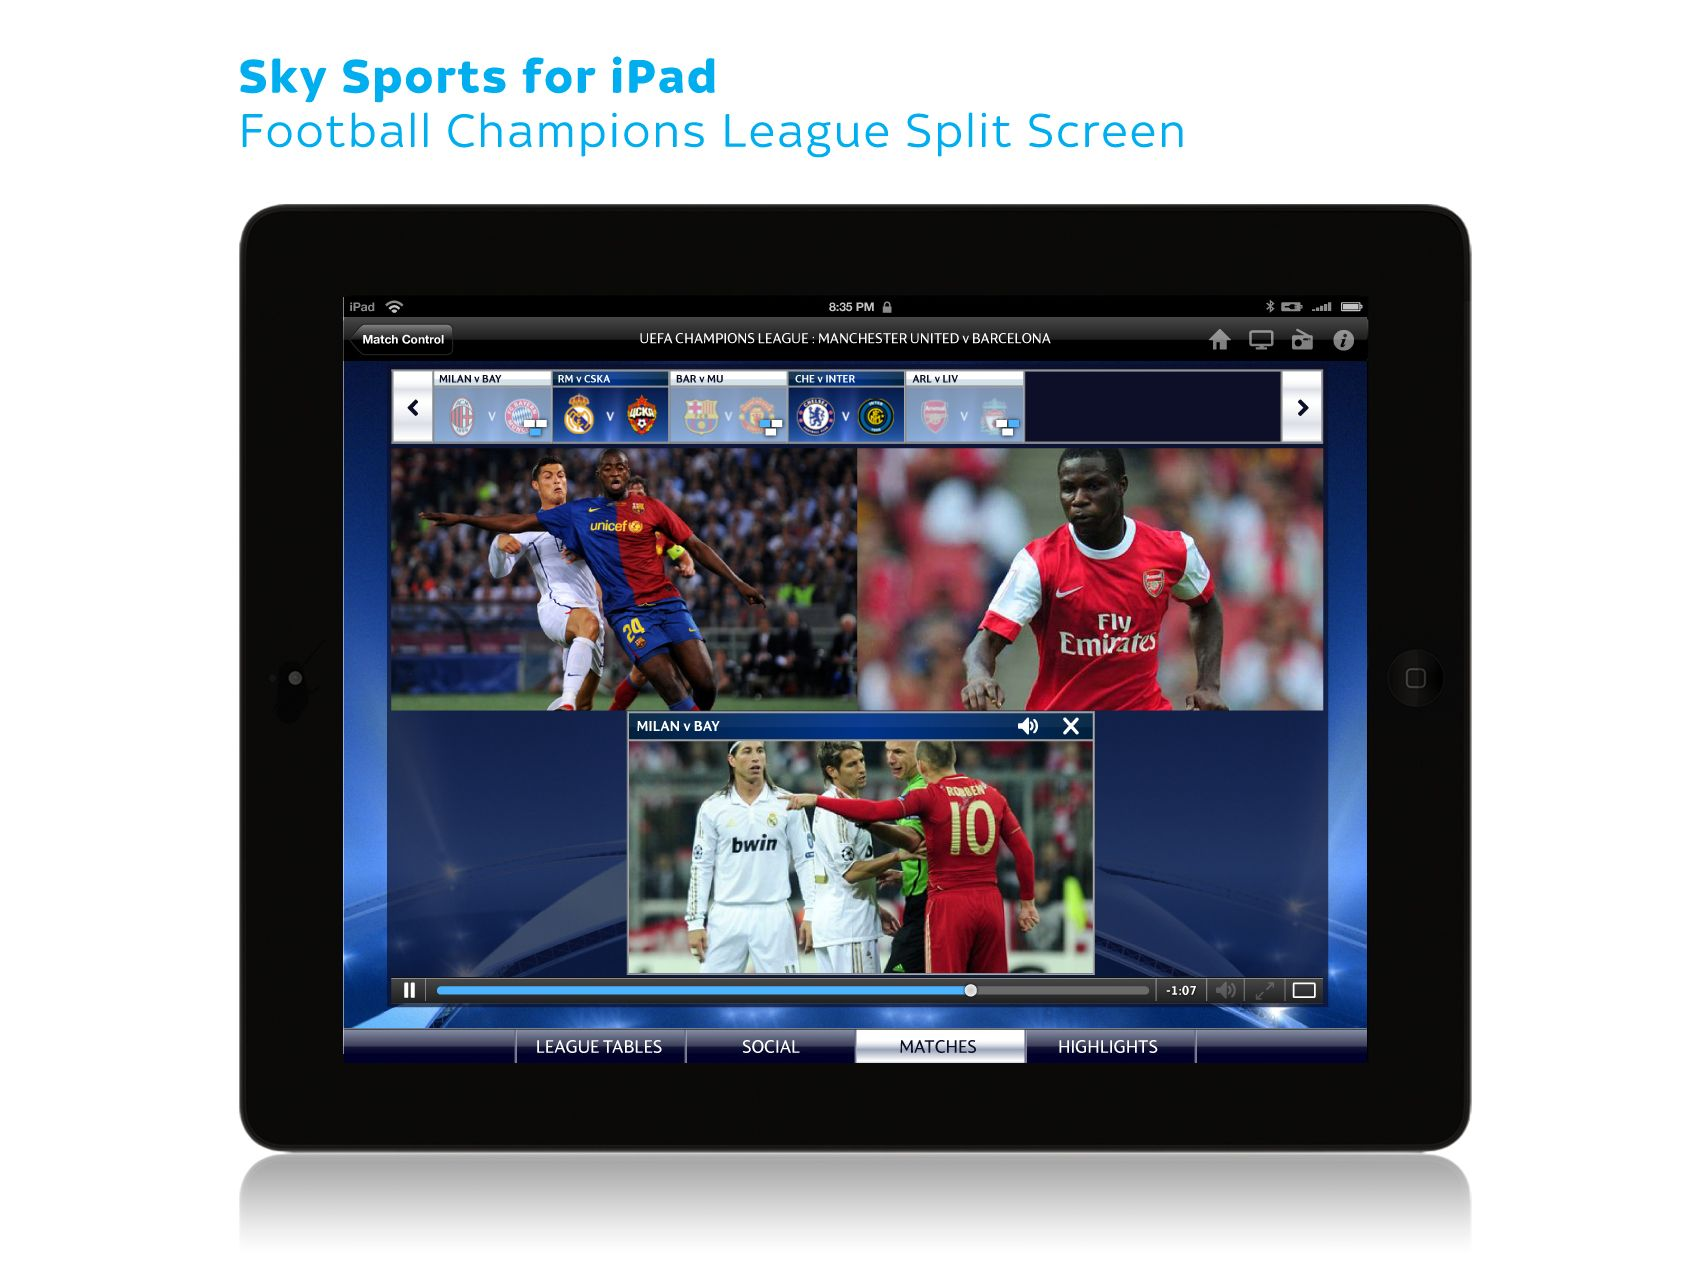 Sky Sports for iPad Football Champion's League 04